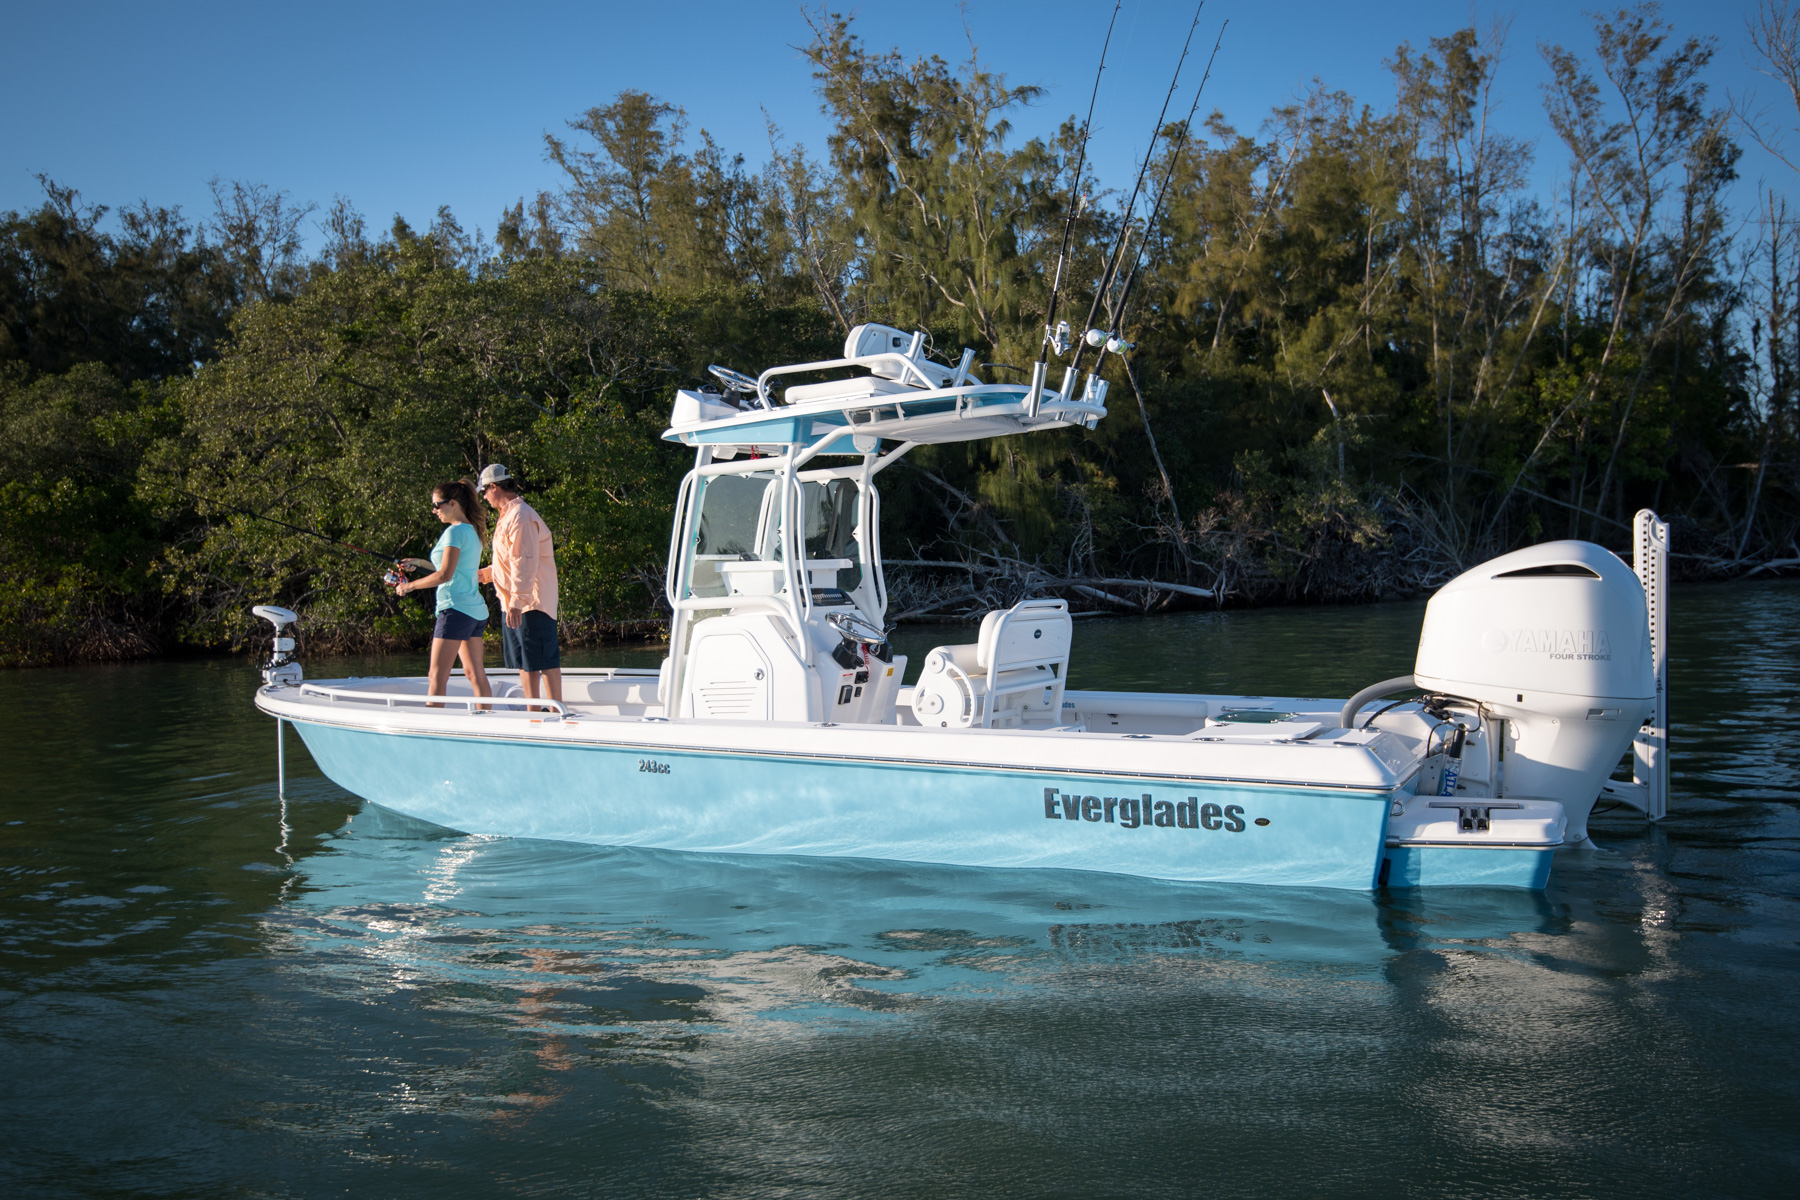 Review Of The Everglades 243cc Tom George Yacht Group Tgyg For Atlas Jack Plate Wiring Harness Image 1424 Ebs 1571